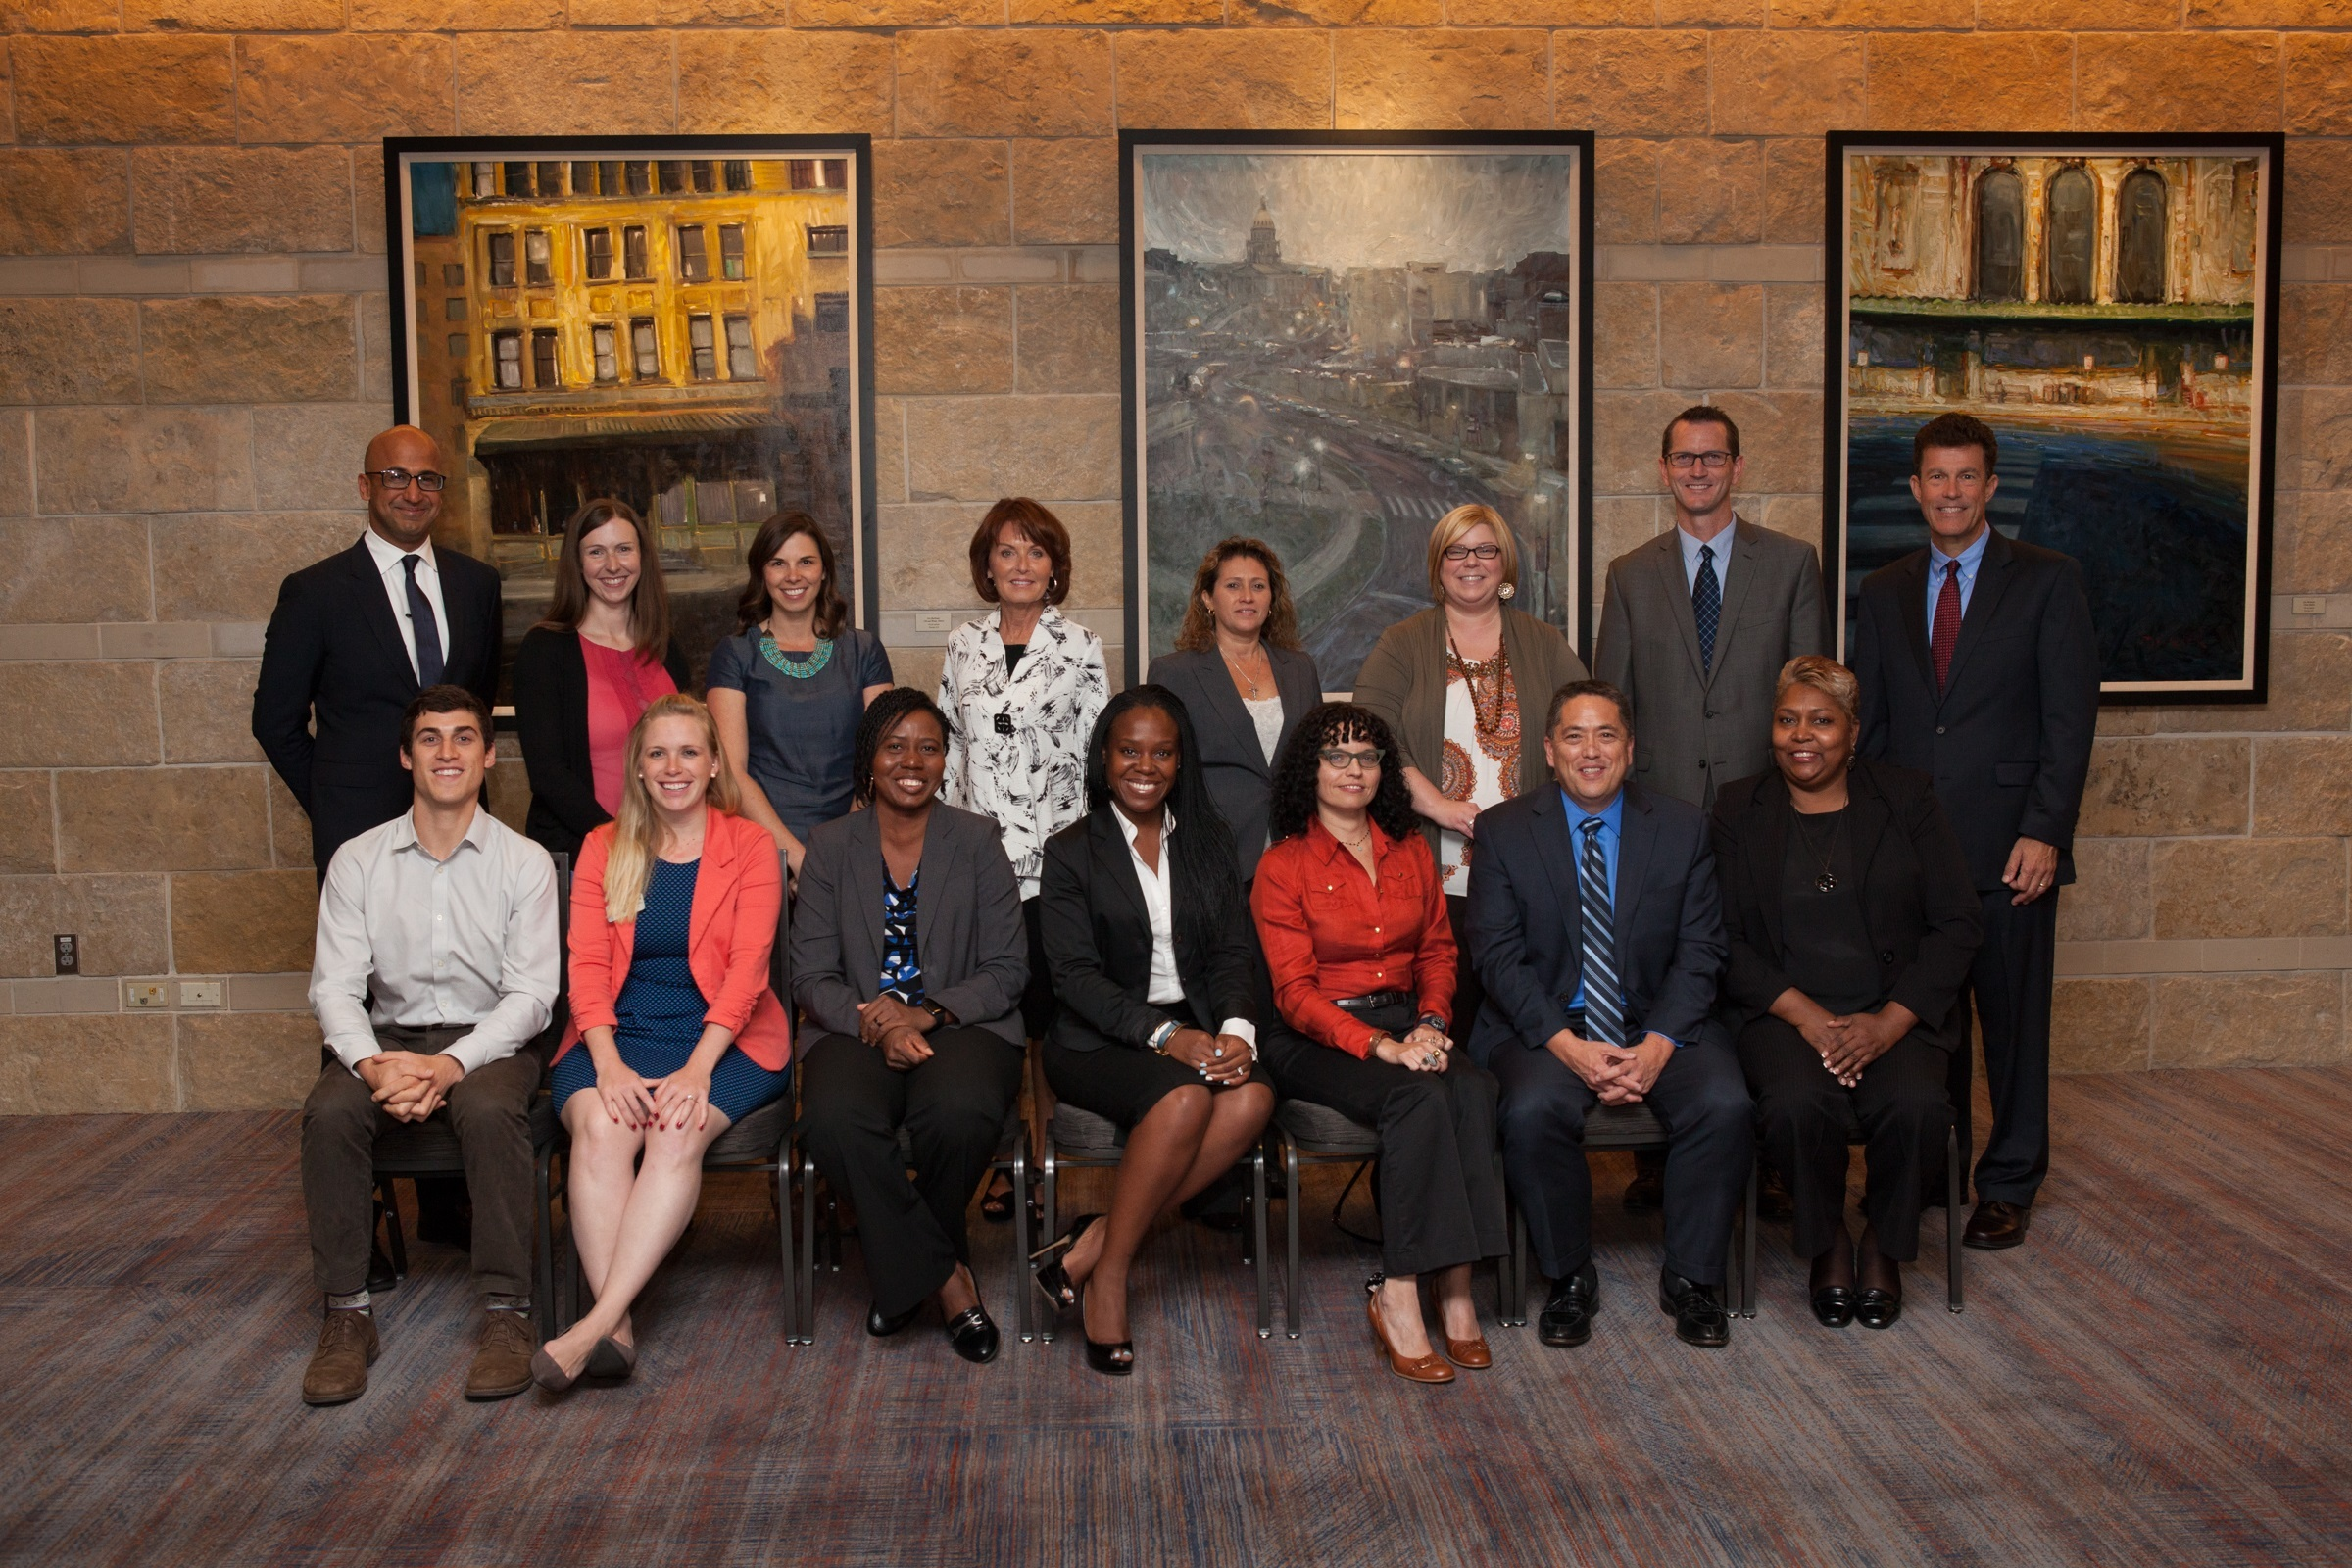 fice Depot Hosts Eighth Annual Awards for Leadership in Greener